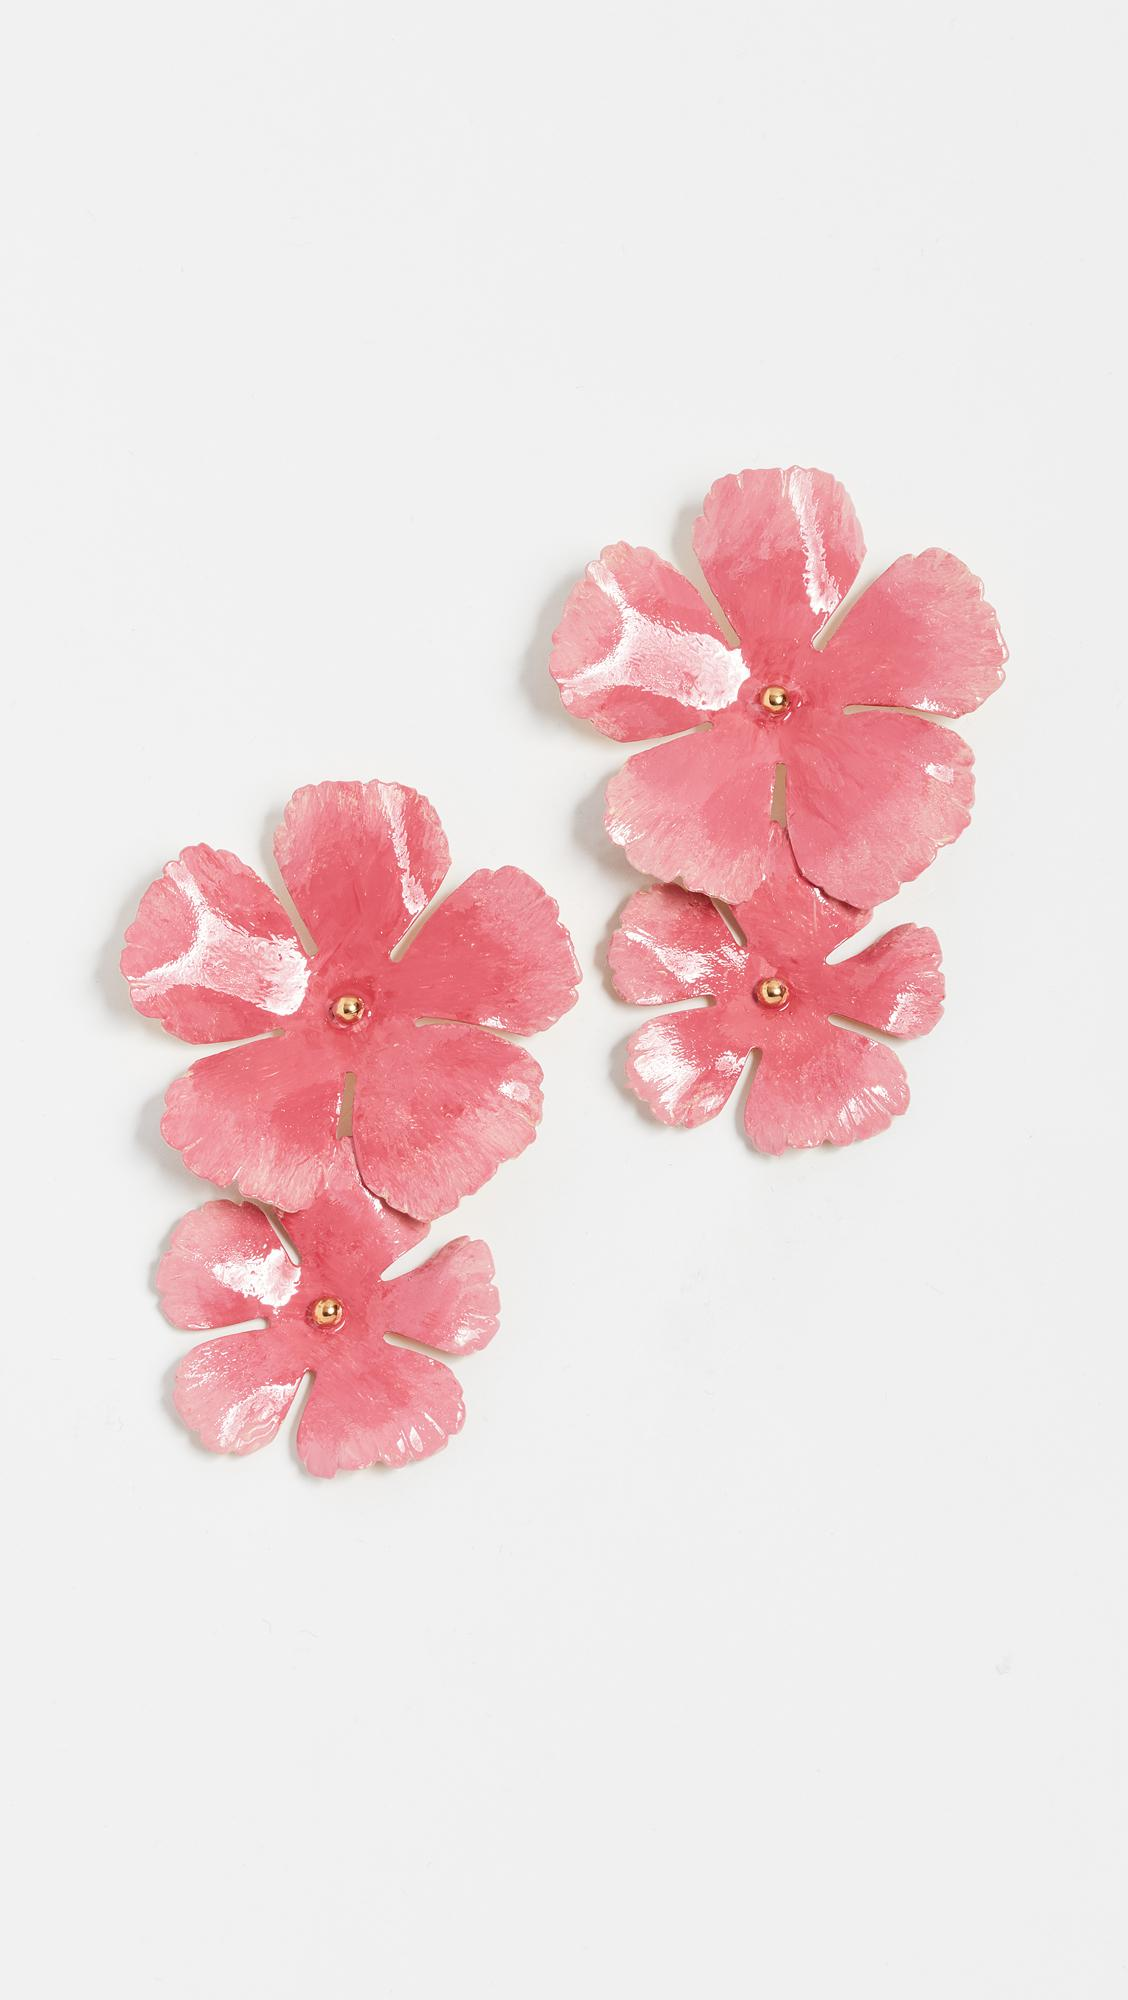 Jennifer Behr Wild Rose Hand-Painted Stud Earrings NdhX1Qtum